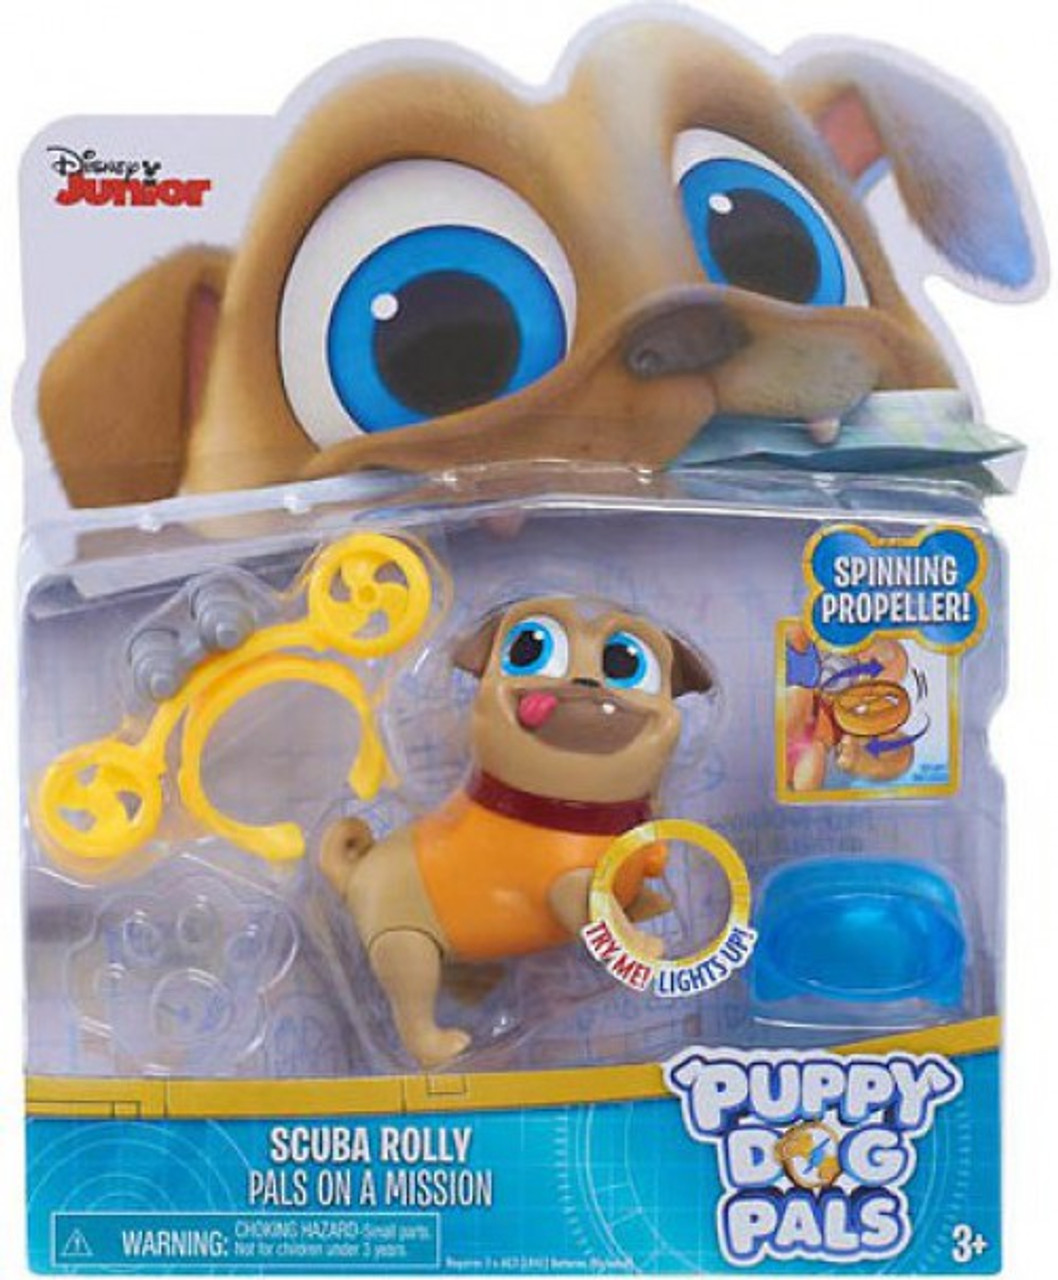 Disney Junior Puppy Dog Pals Light Up Pals On A Mission Scuba Rolly Action Figure Spinning Propeller Just Play Toywiz